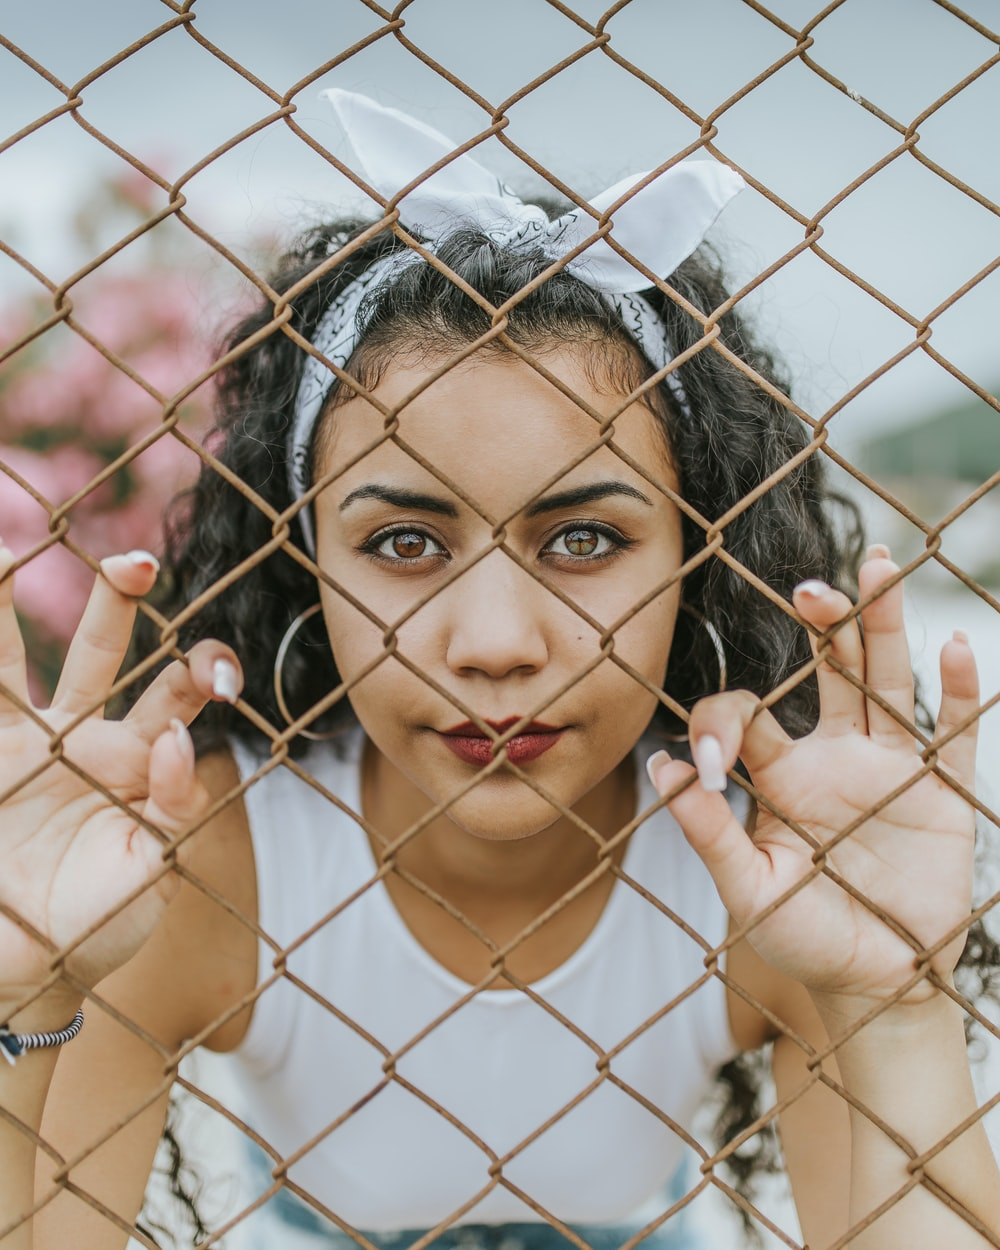 woman holding chain link fence